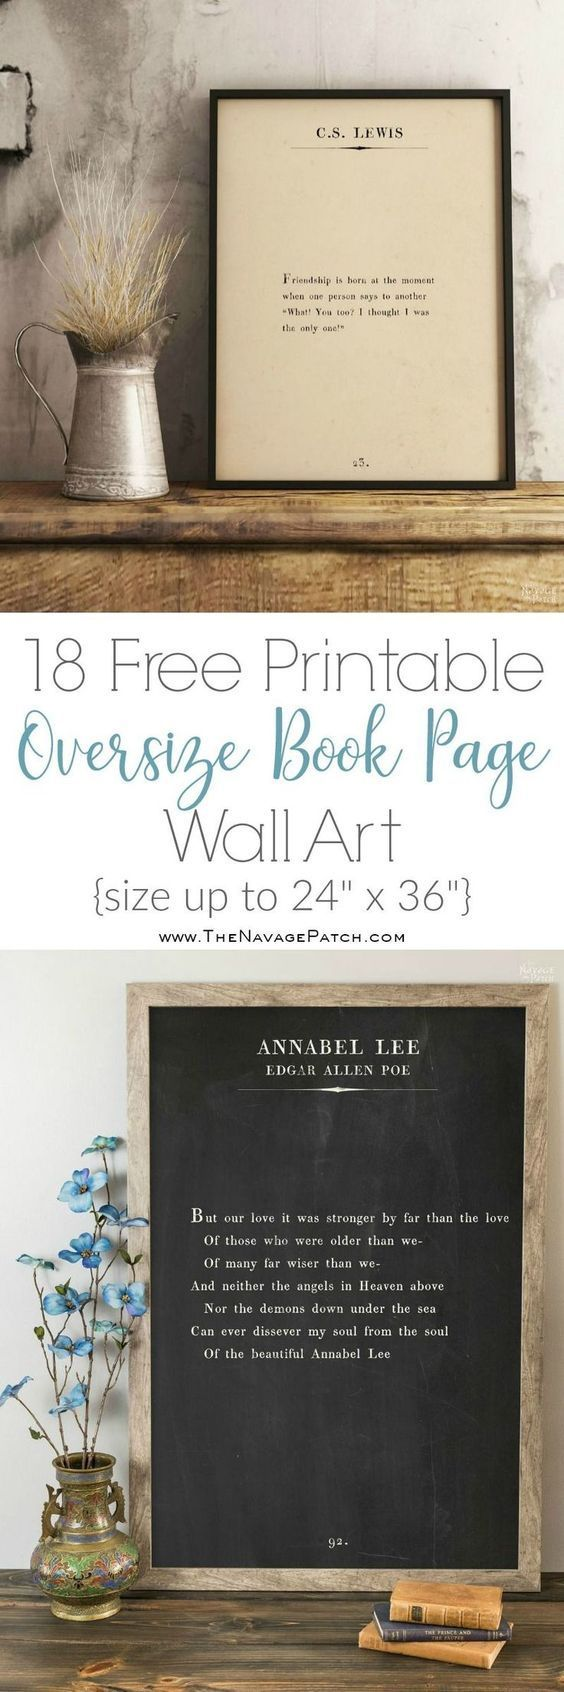 More oversize book page wall art and free printables rustic